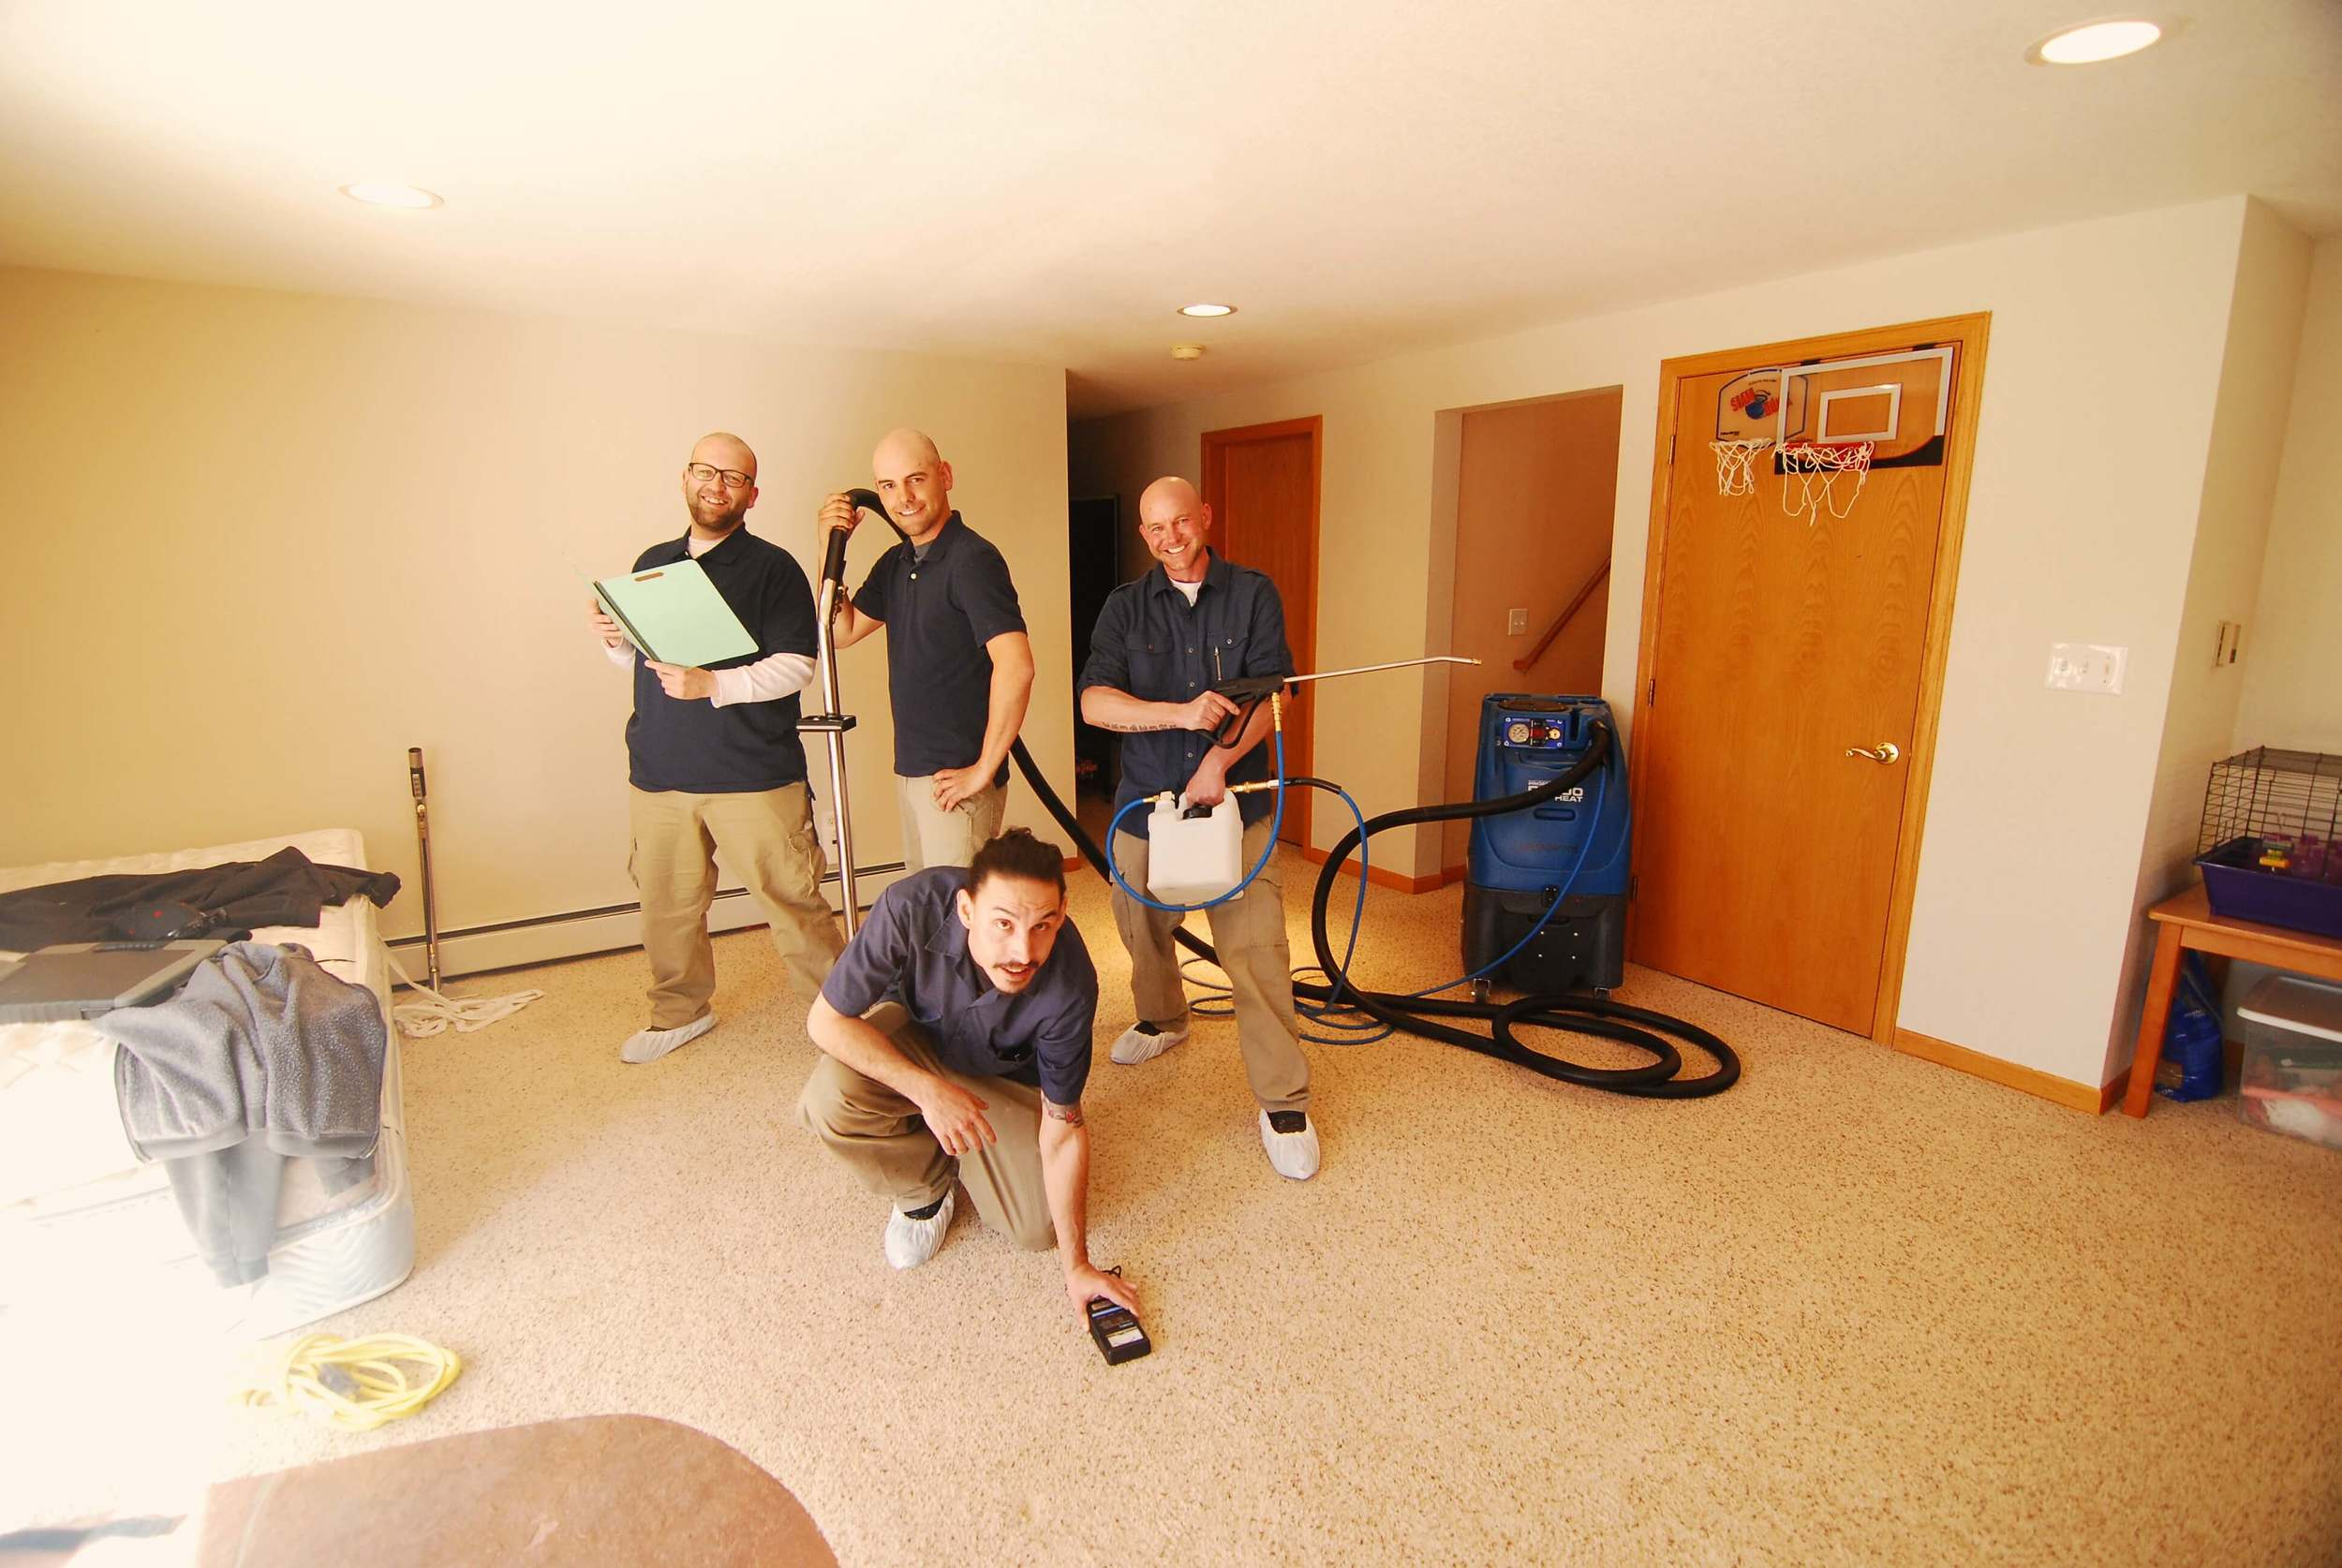 """"""" Theo and his team are incredible. They are very friendly, knowledgeable and professional. If you need anything from ultra clean carpets to advanced restoration, these are your go to guys."""" - Bob, Boulder"""